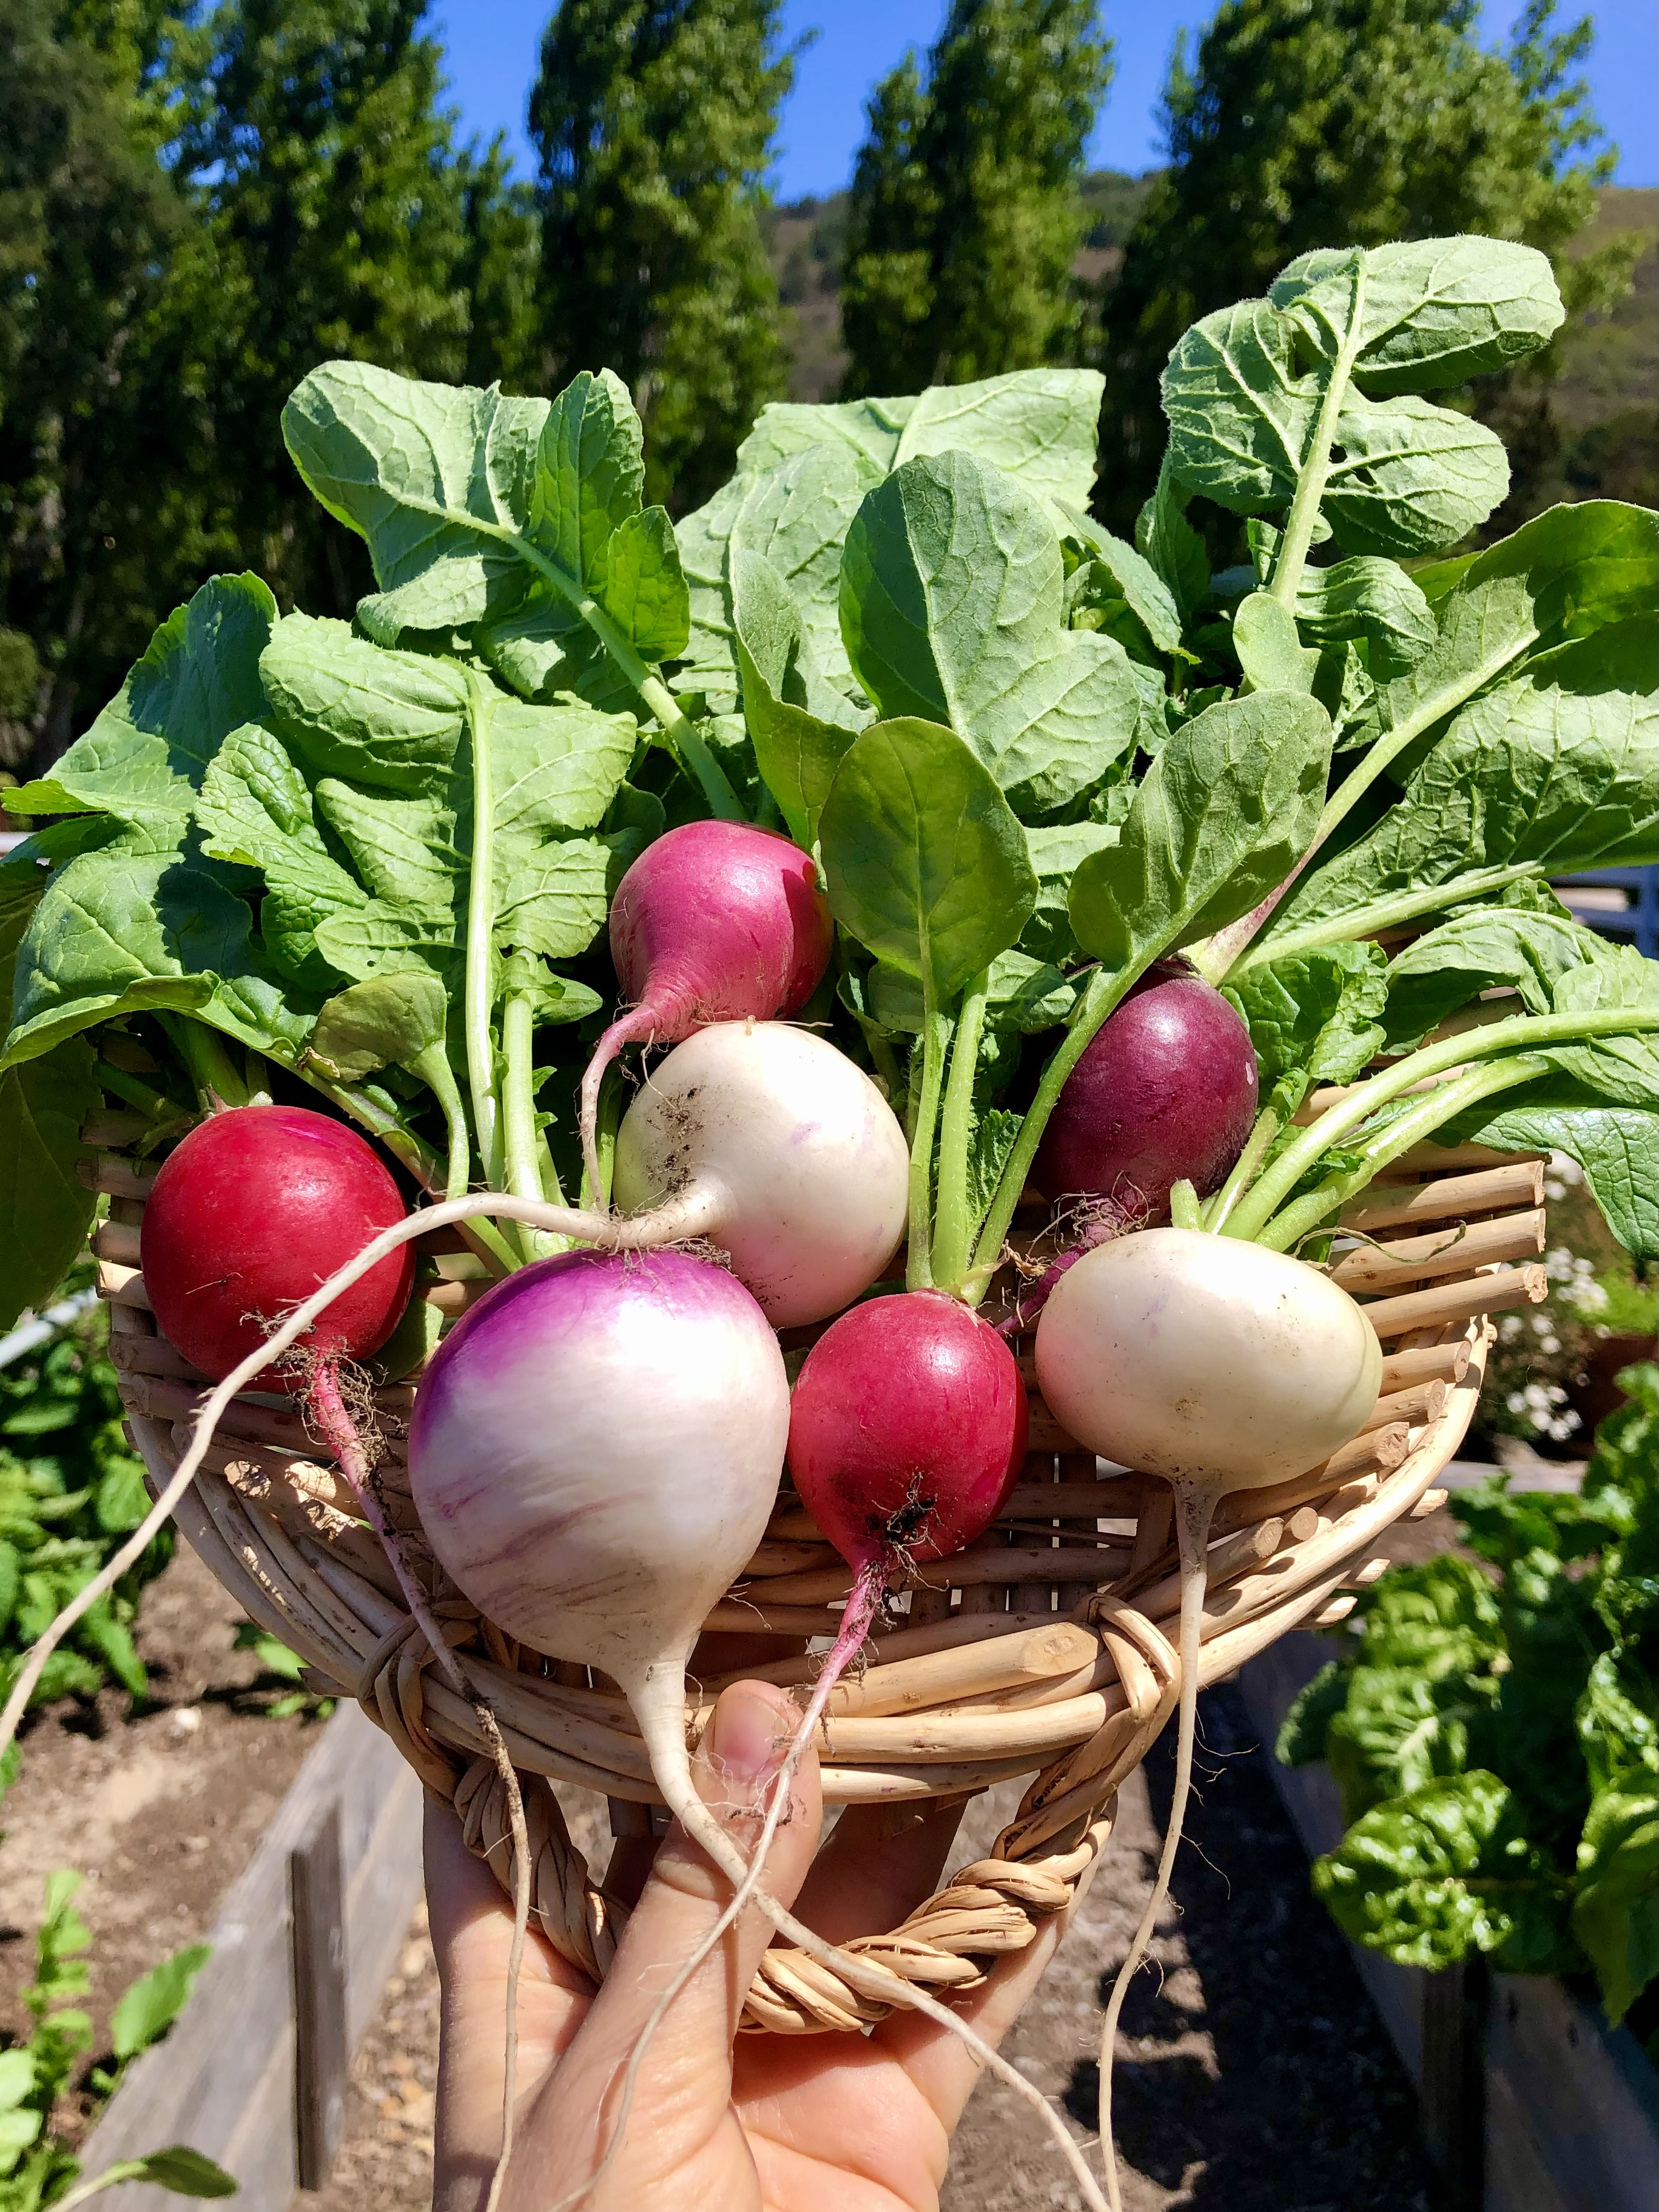 Gardening Like a Nutritionist: Featuring Radishes